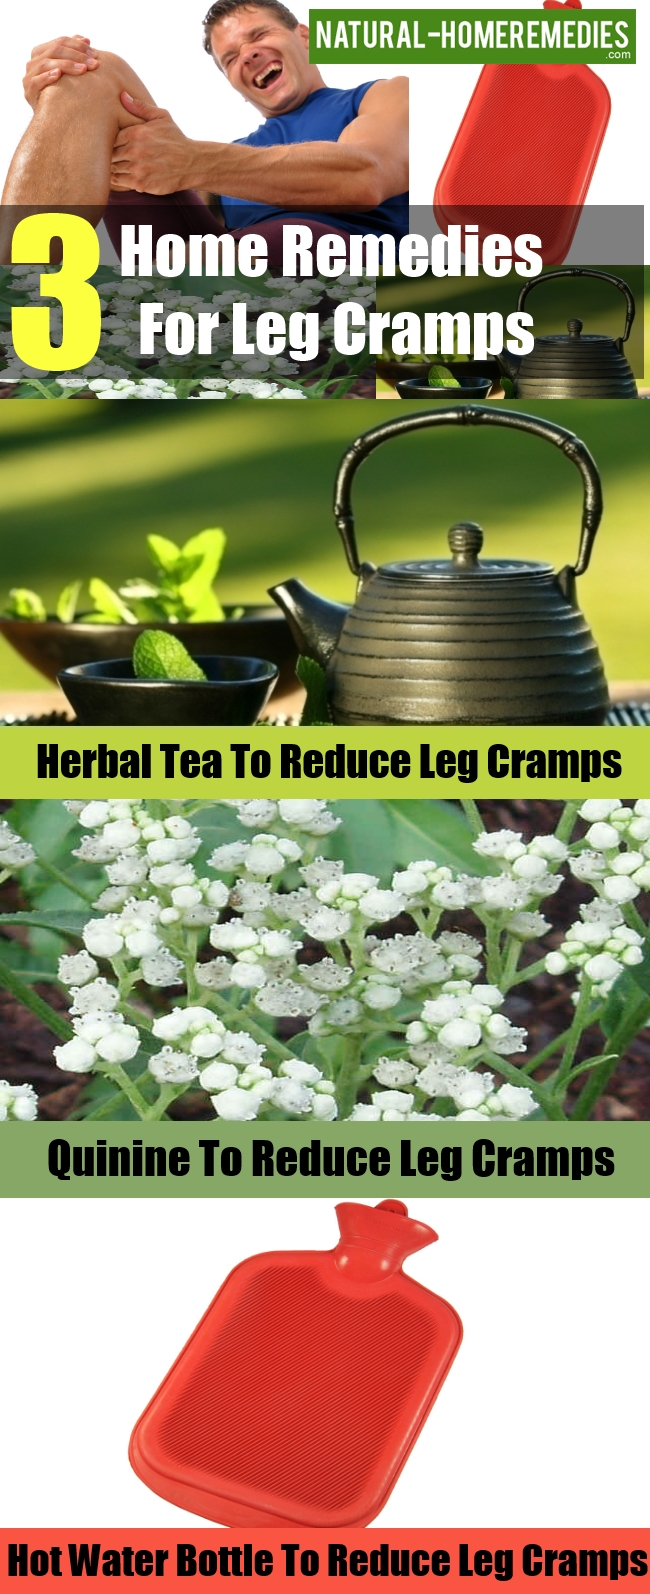 Natural Treatment For Nocturnal Leg Cramps